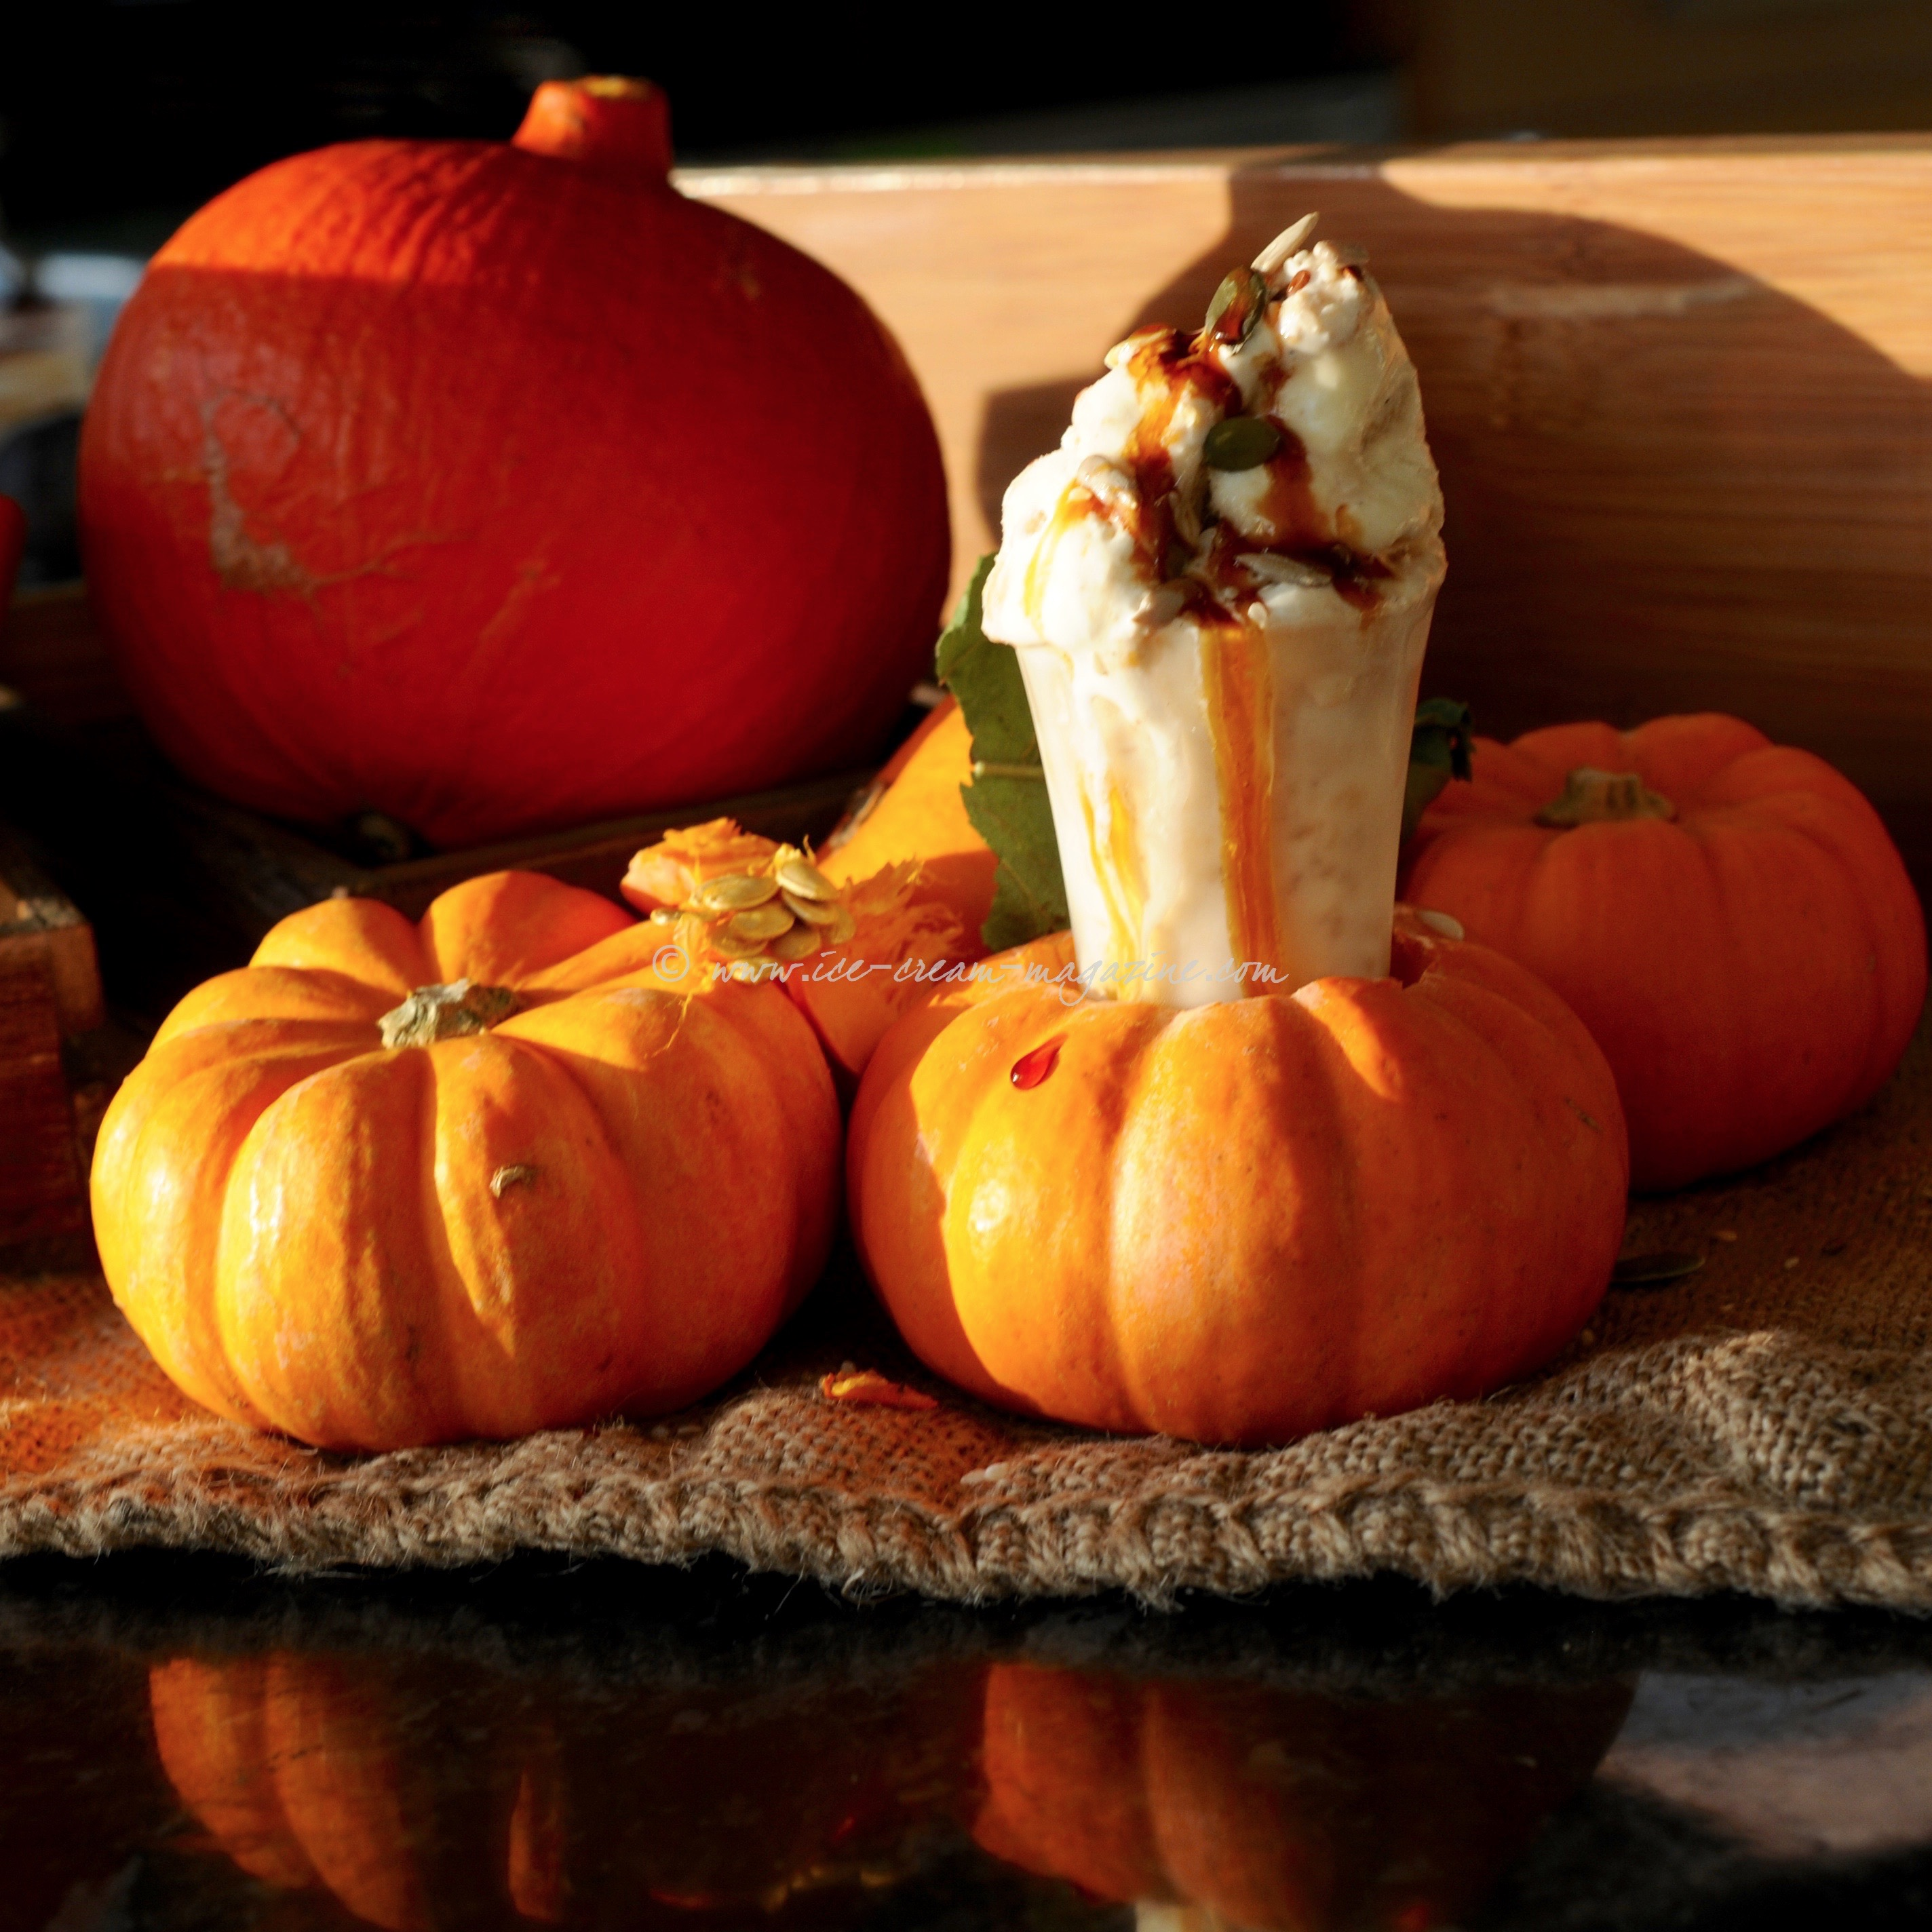 Menu & Pimped pumpkin ice cream shots | ice cream magazine